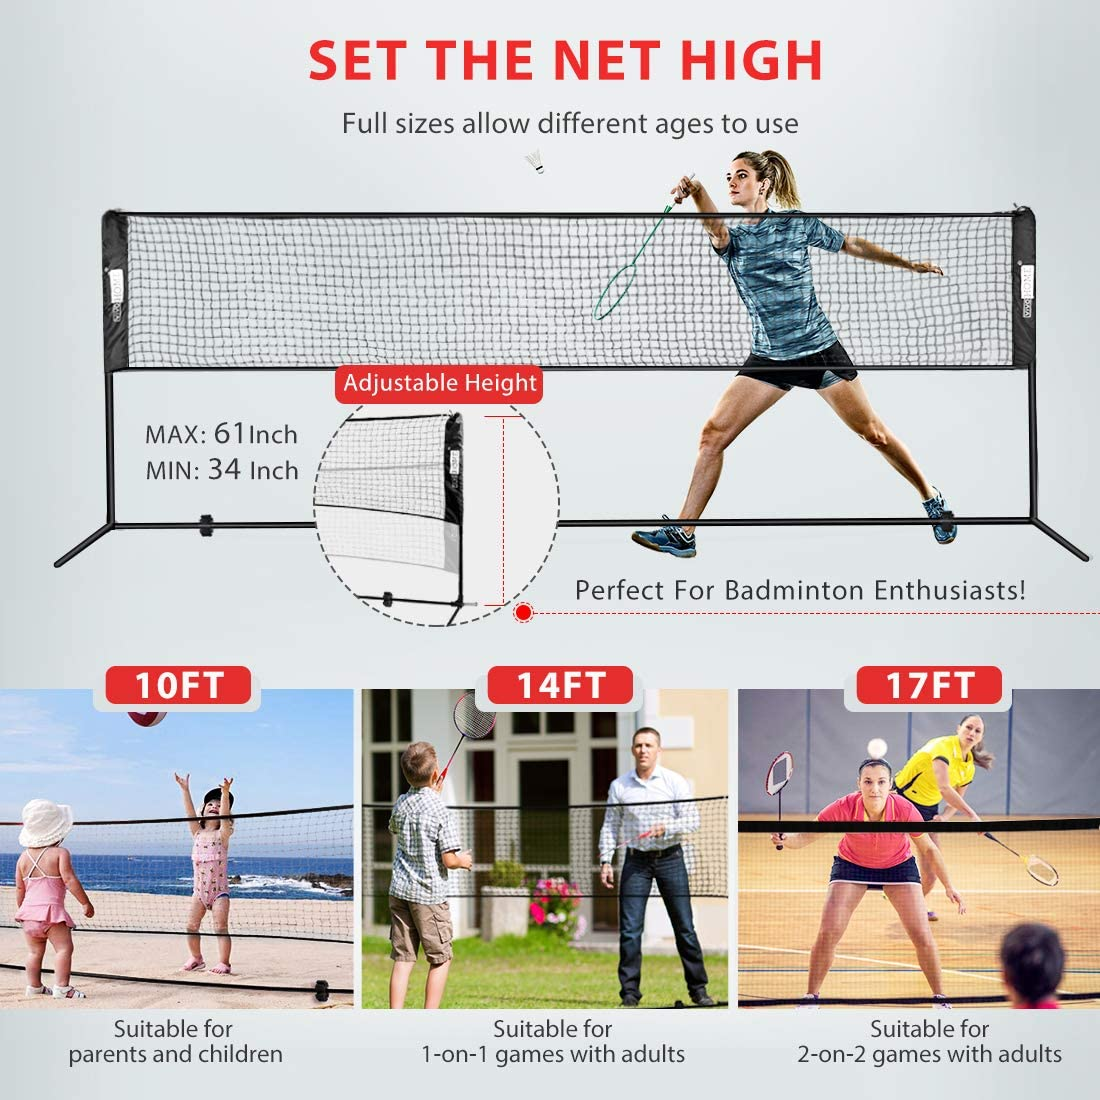 Badminton Set Carry Adjustable Height for Tennis Pickleball for Outdoor as Backyard Playground Park Ball Court Beach 240inches Long Net Volleyball Net Portable with Stainless Steel Tube Easy Setup